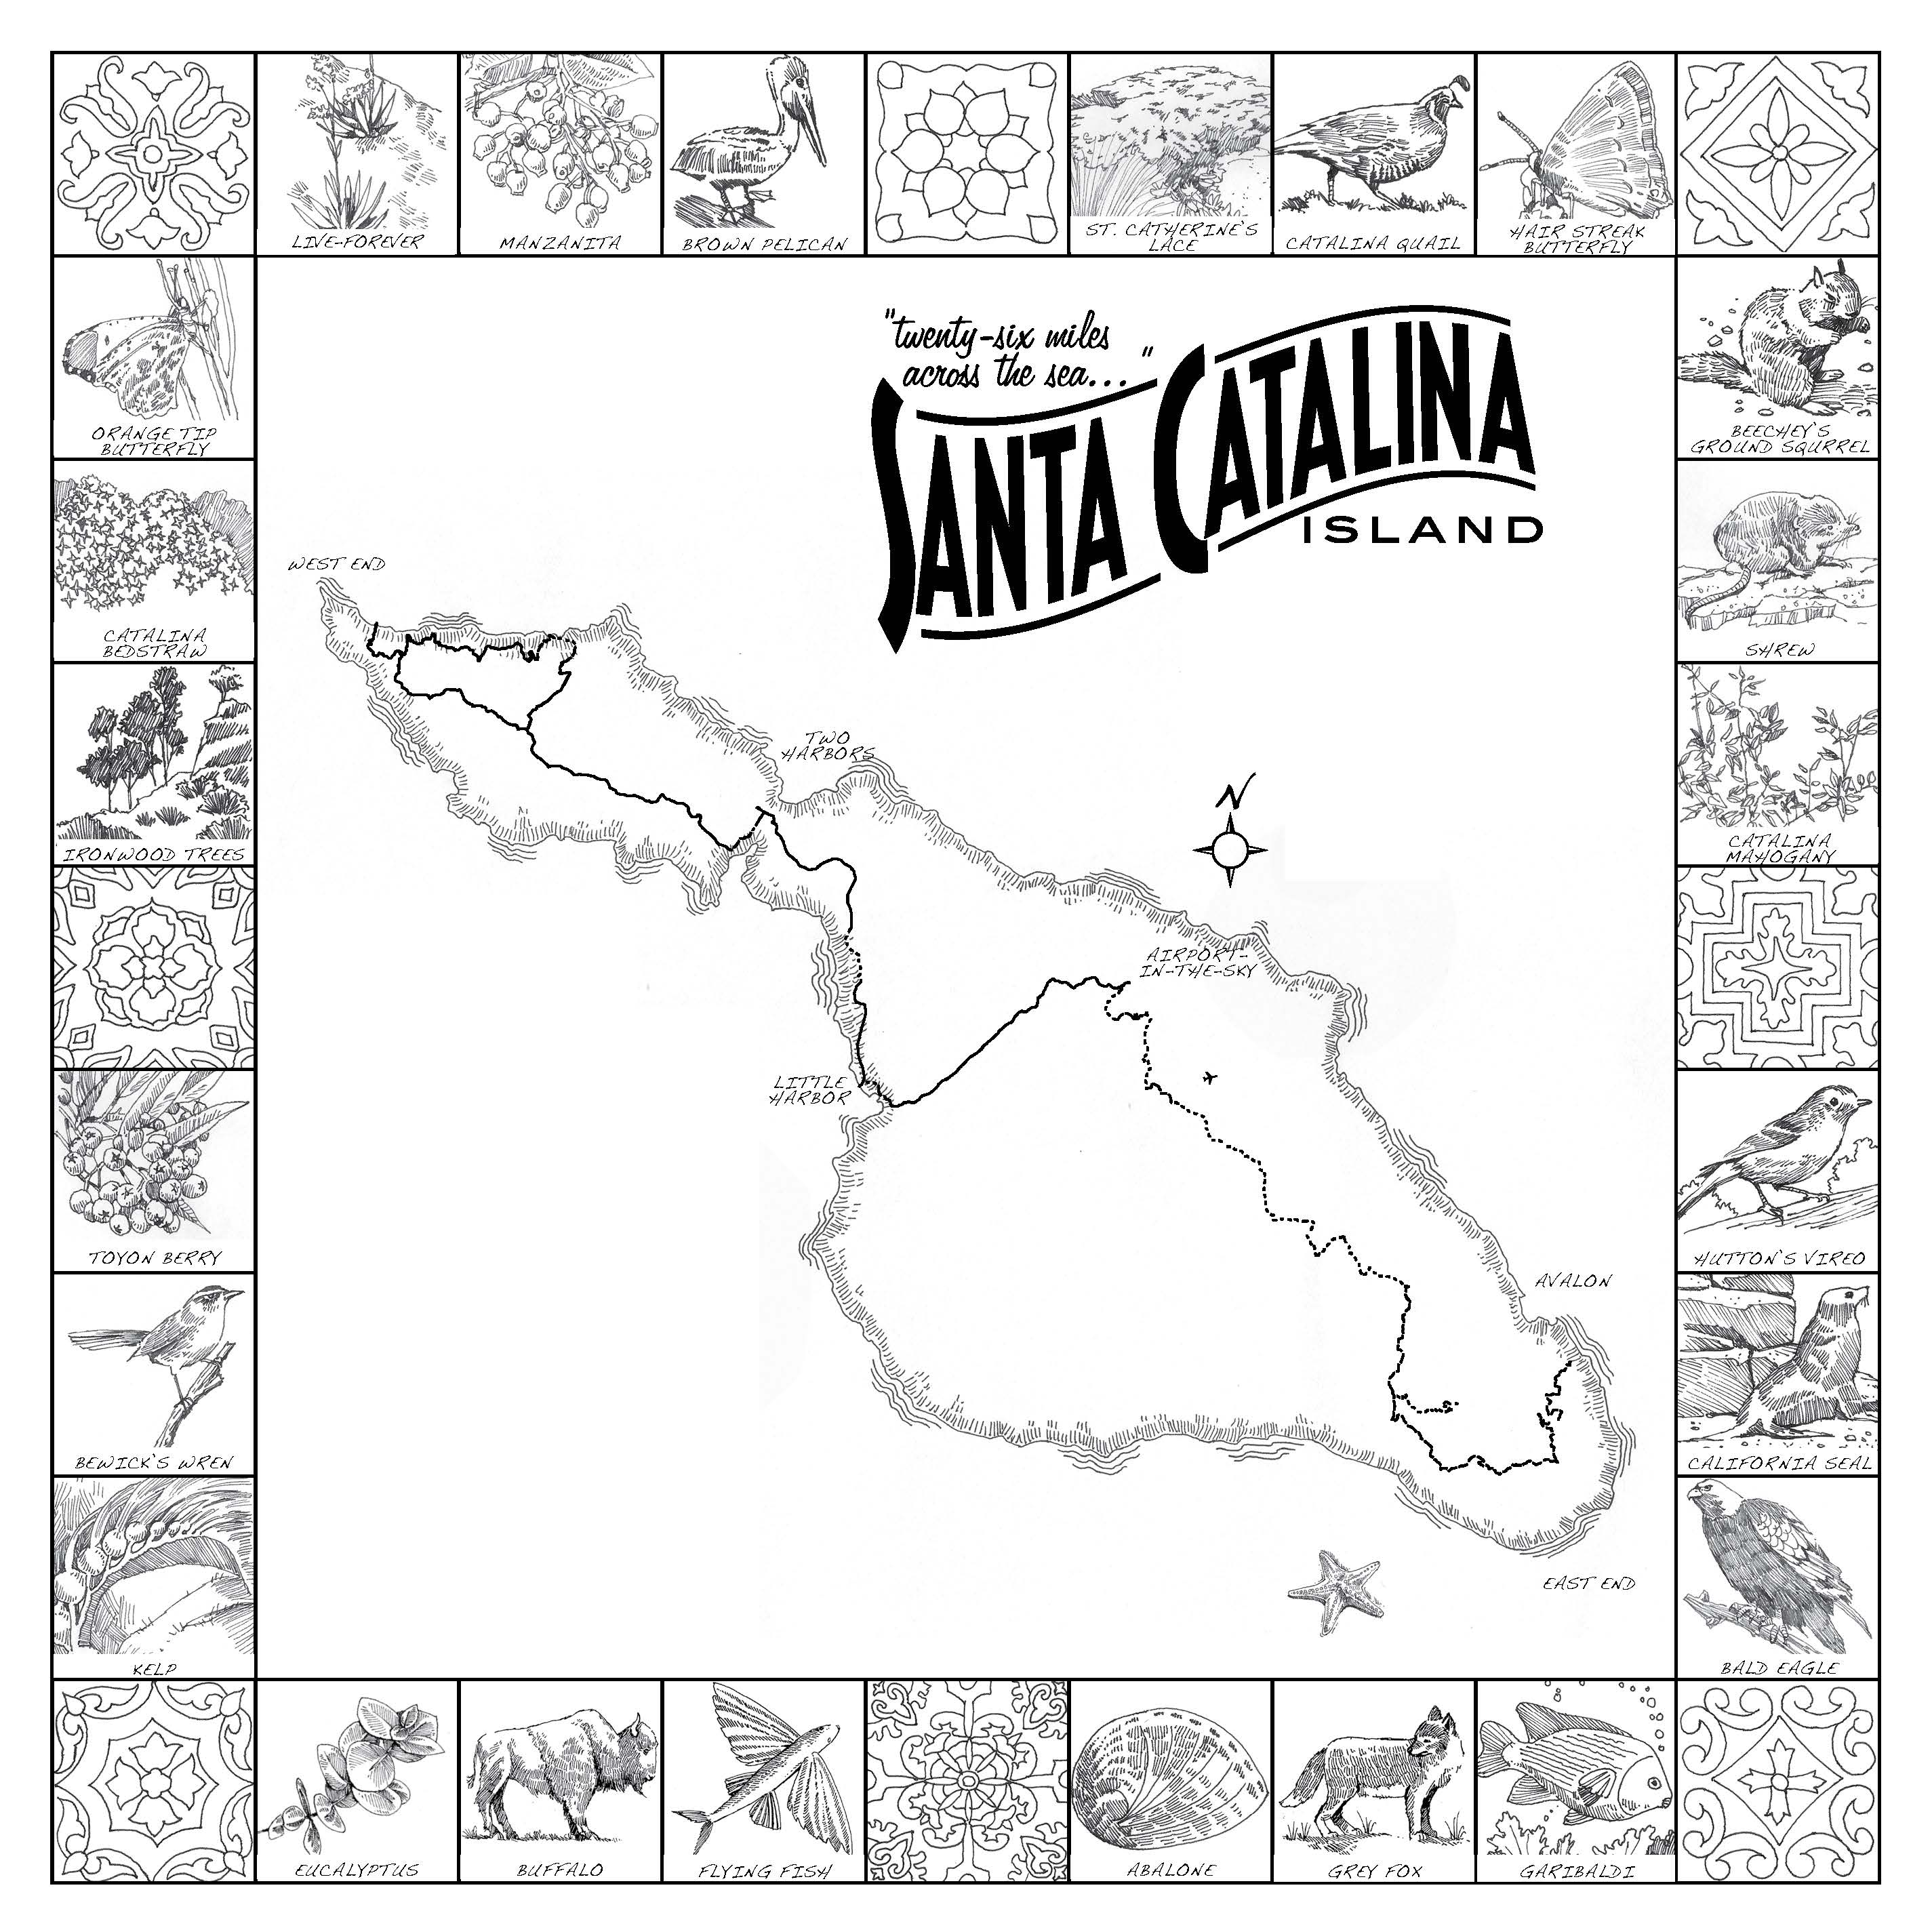 05Santa-Catalina-TRAIL-Map